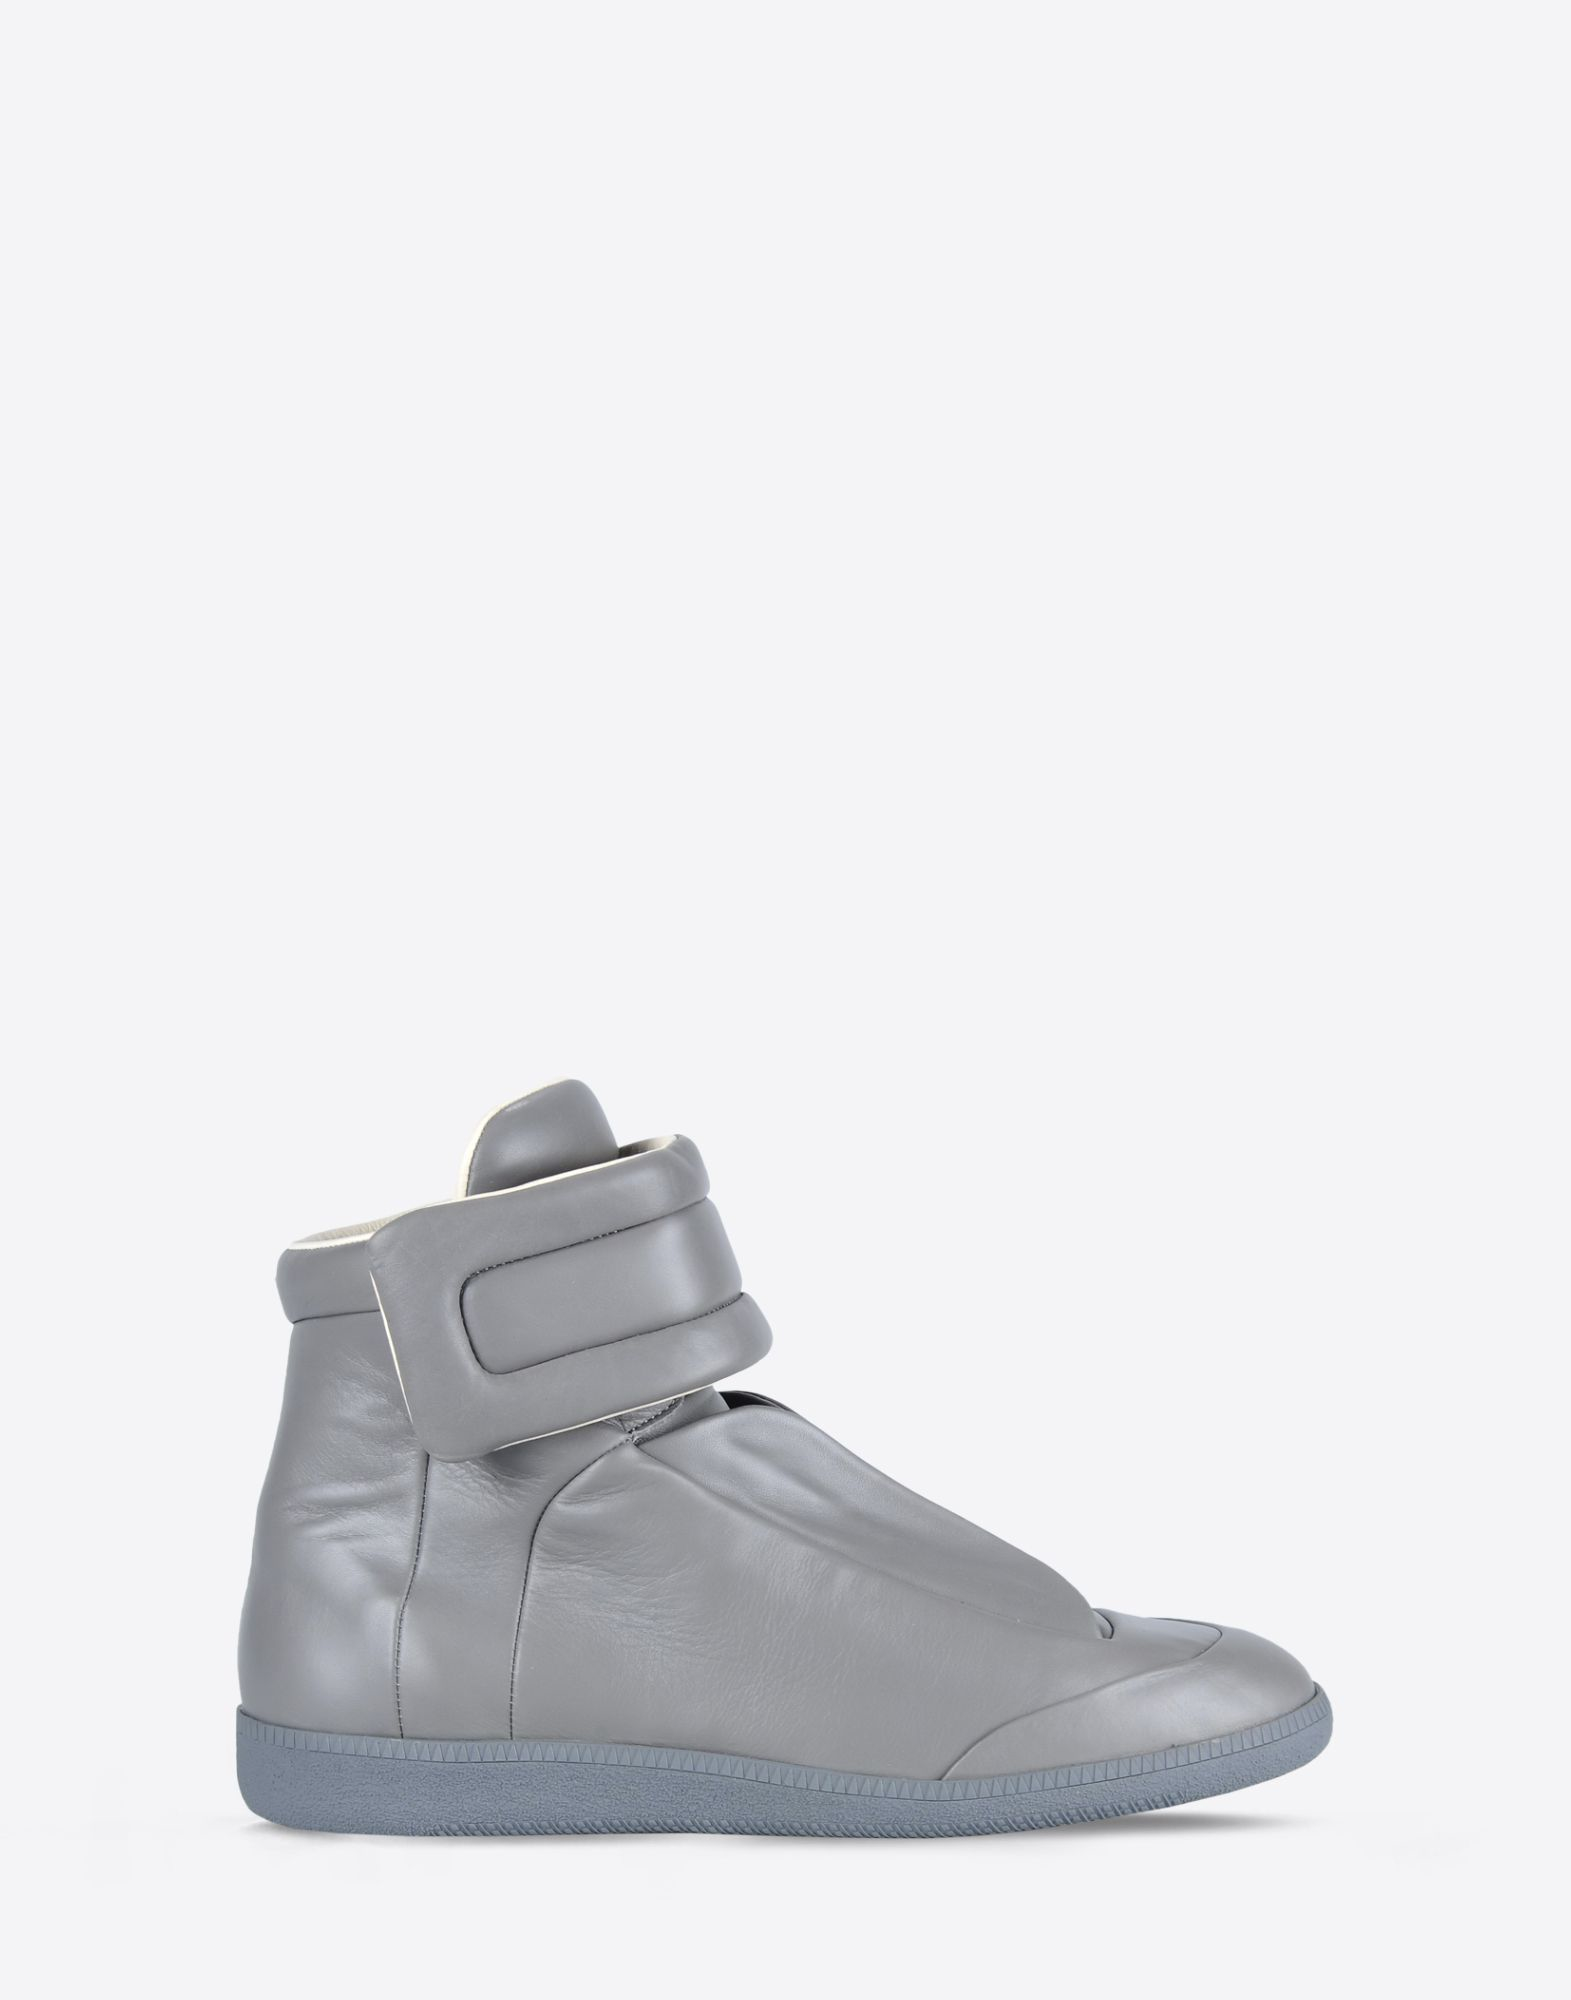 maison margiela 39 future high top 39 sneakers in calfskin in gray grey lyst. Black Bedroom Furniture Sets. Home Design Ideas